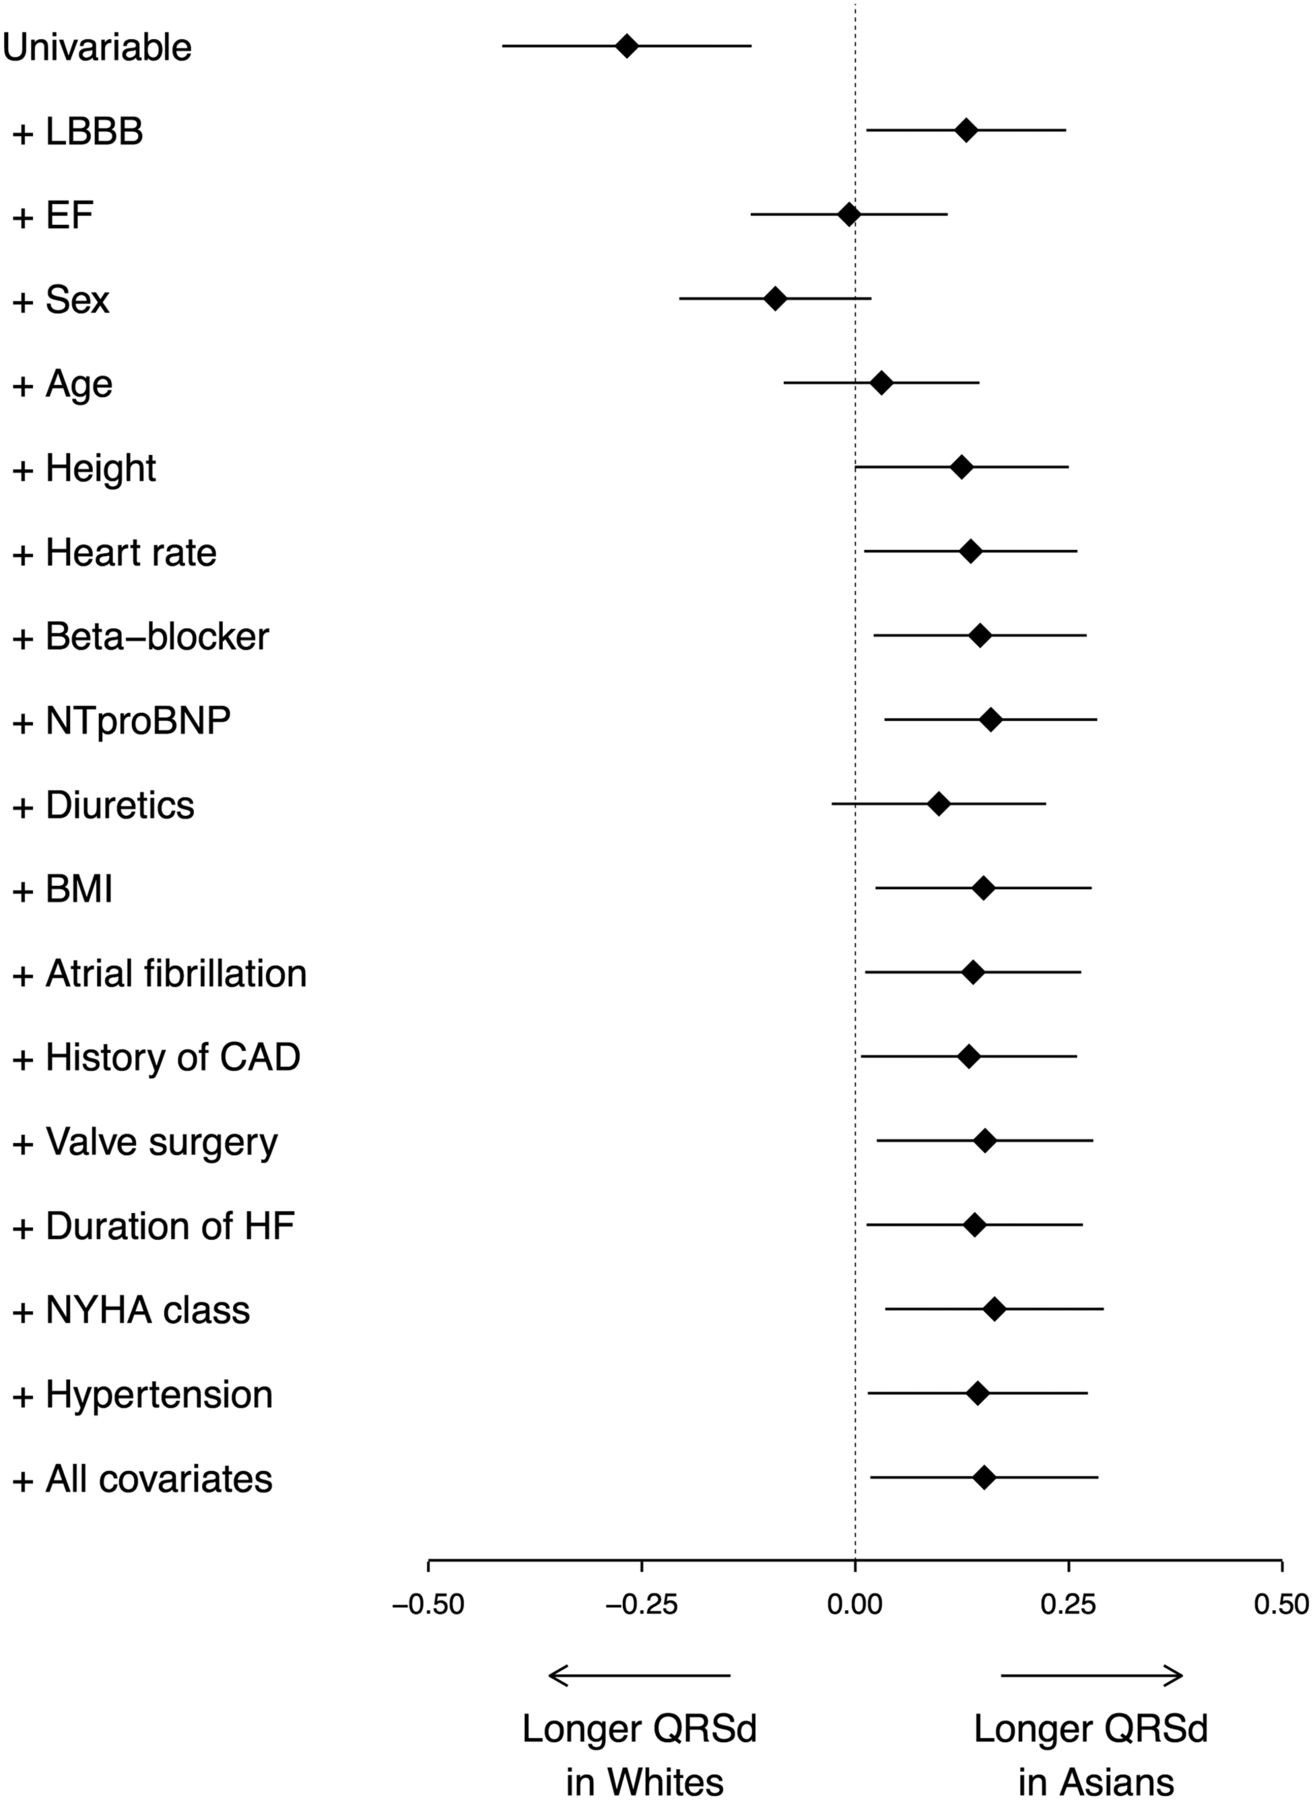 Ethnic differences in the association of QRS duration with